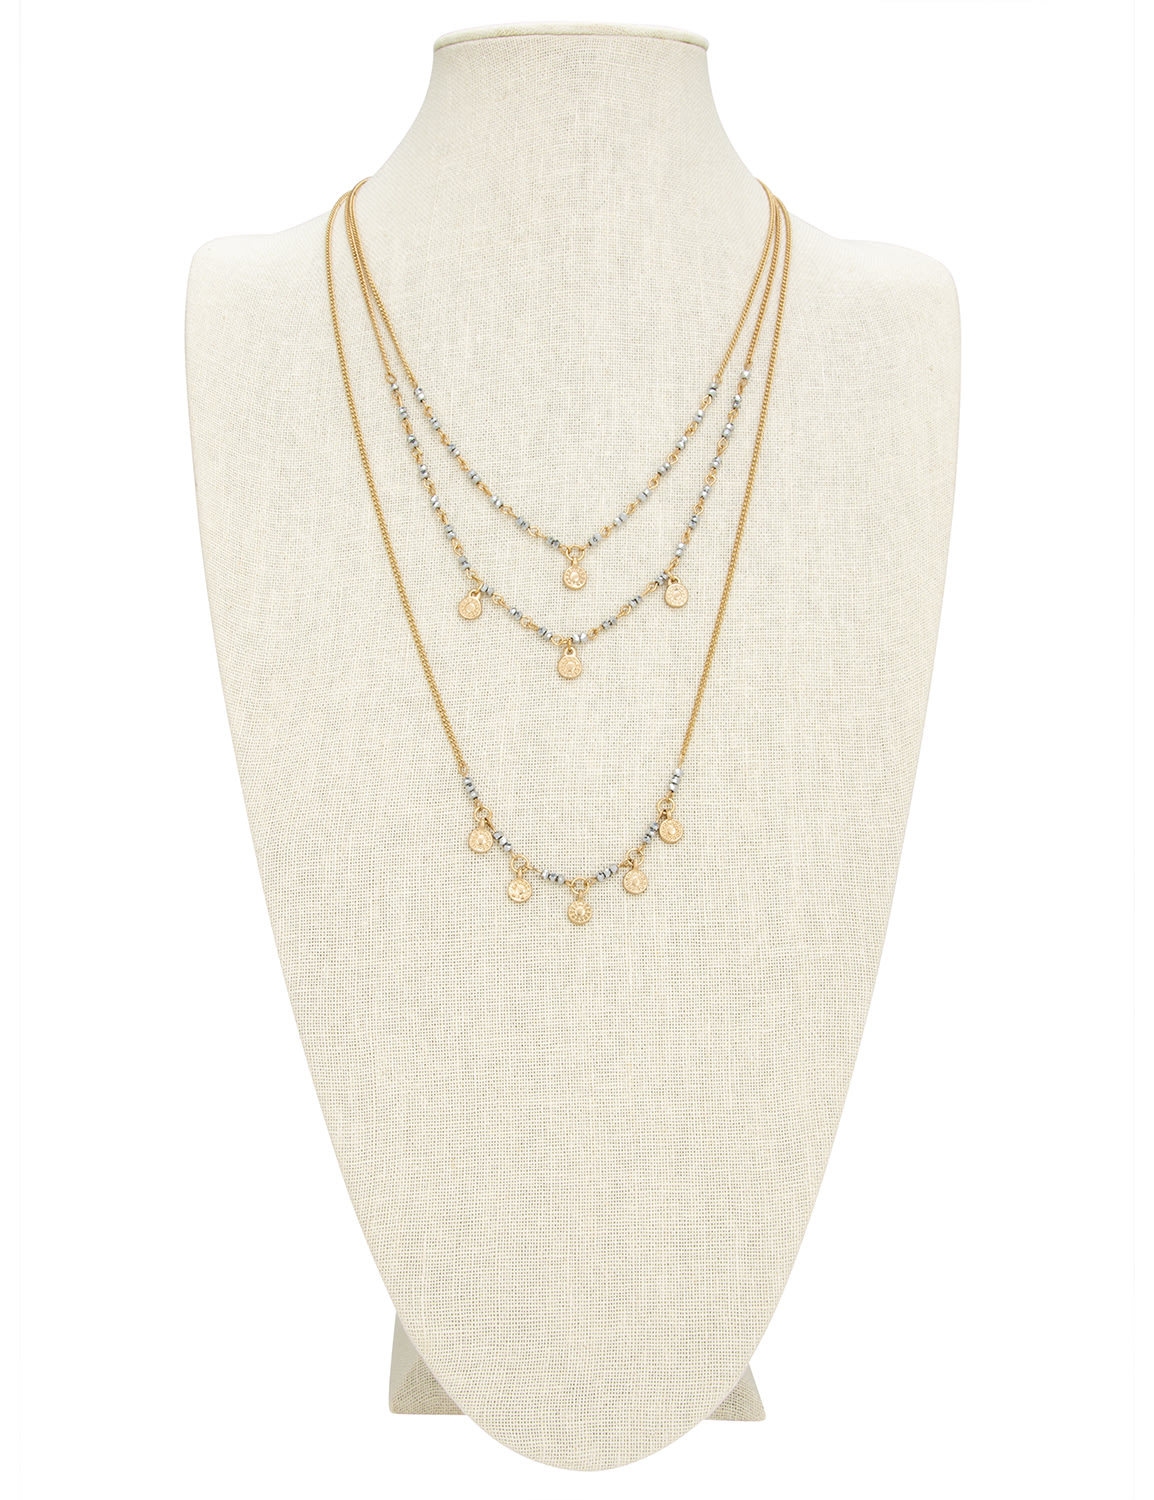 Gold Medallion Beaded Layered Necklace and Earring Set - Gold - Back